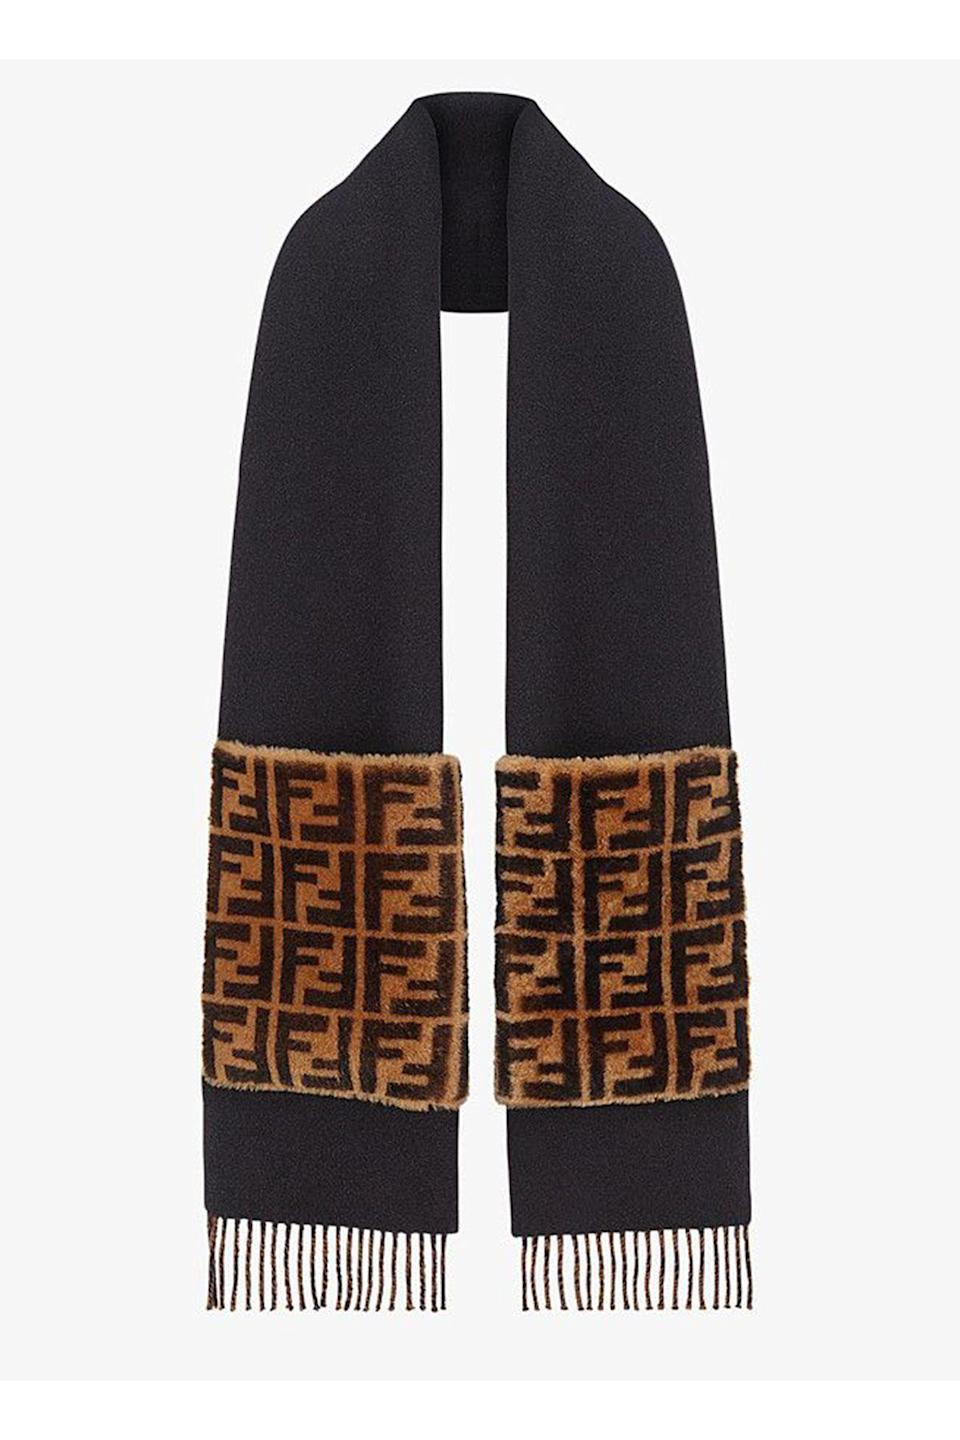 """<p><strong>Fendi</strong></p><p>fendi.com</p><p><strong>$2100.00</strong></p><p><a href=""""https://www.fendi.com/us/textile-accessories-woman/touch-of-fur-scarf-fxt252a2ohf0qa1?from=search&queryId=24136ae706410b2894b7bf9f39255917"""" rel=""""nofollow noopener"""" target=""""_blank"""" data-ylk=""""slk:Shop Now"""" class=""""link rapid-noclick-resp"""">Shop Now</a></p><p>Leave it to the creator of the world's first It bag to conjure up an ultra-luxurious, fur-lined scarf that will be at the top of every discernible shopper's fall wish list. </p>"""